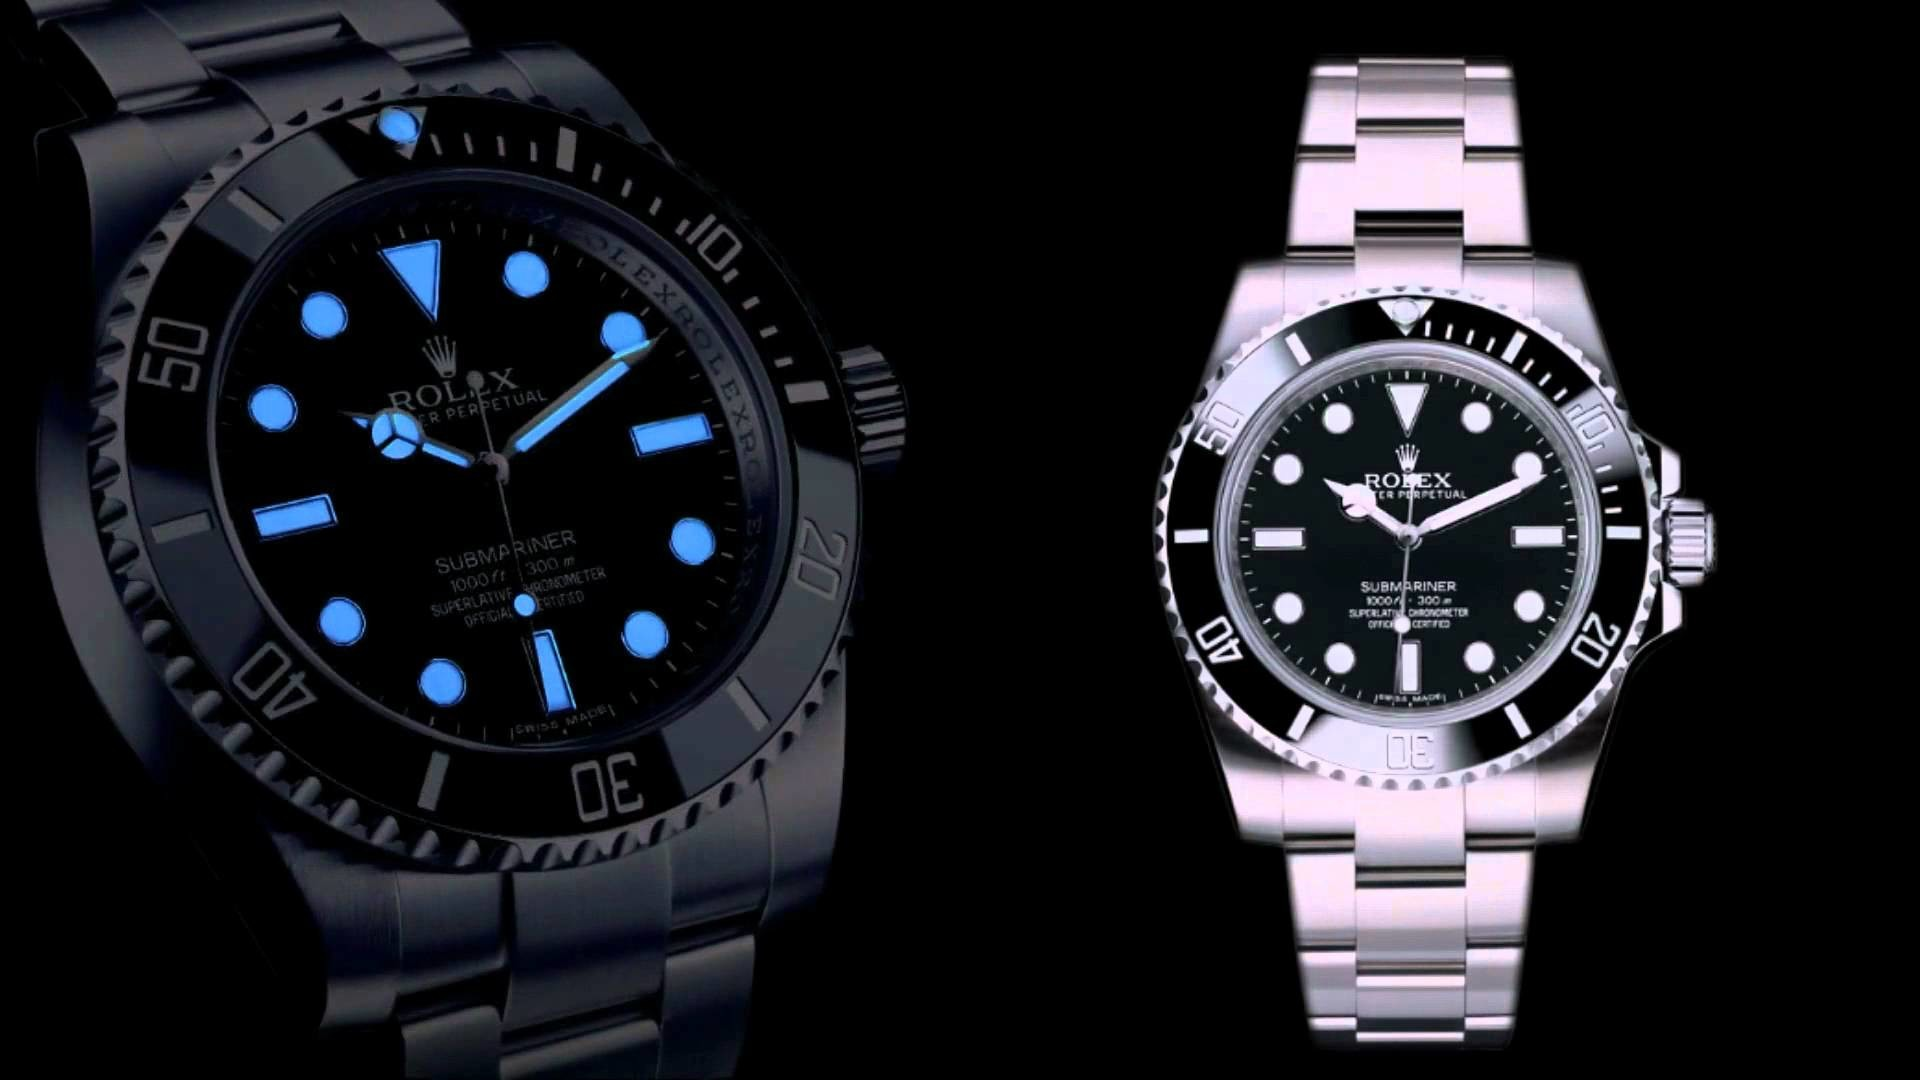 1920x1080  Rolex Hd Wallpaper Img - World famous watches brands in Little  Rock